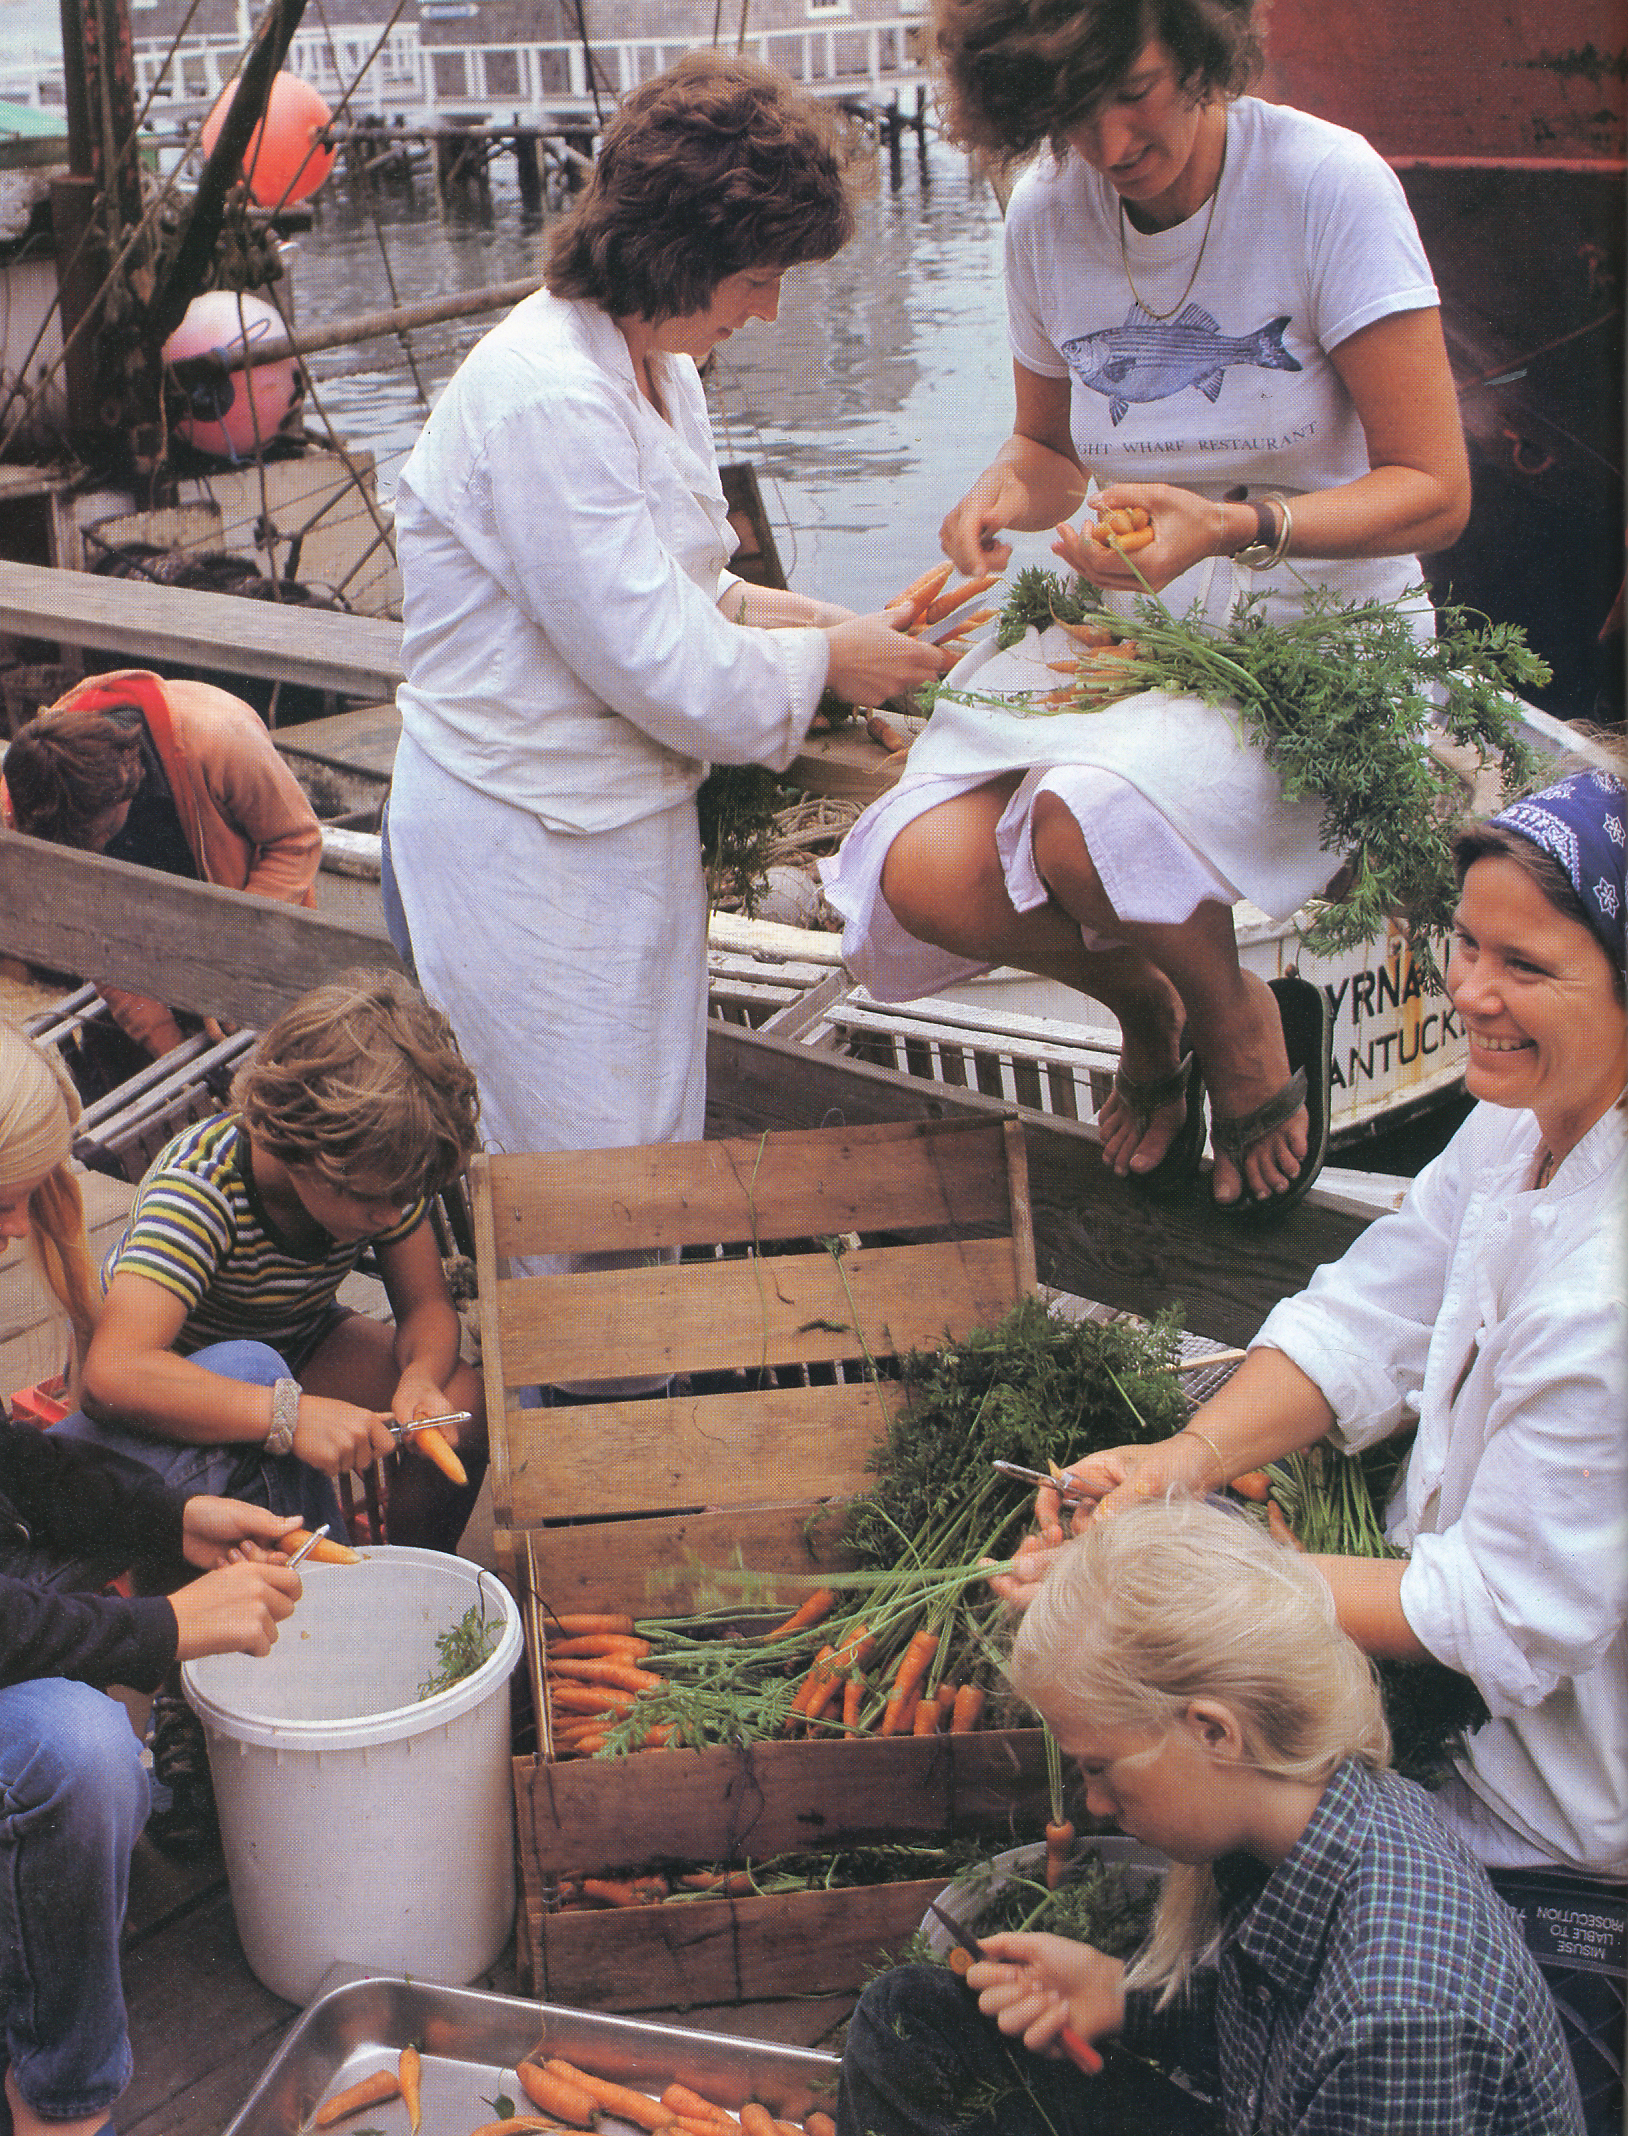 Peeling carrots outside the Straight Wharf restaurant. From 'The Victory Garden Cookbook', 1982.